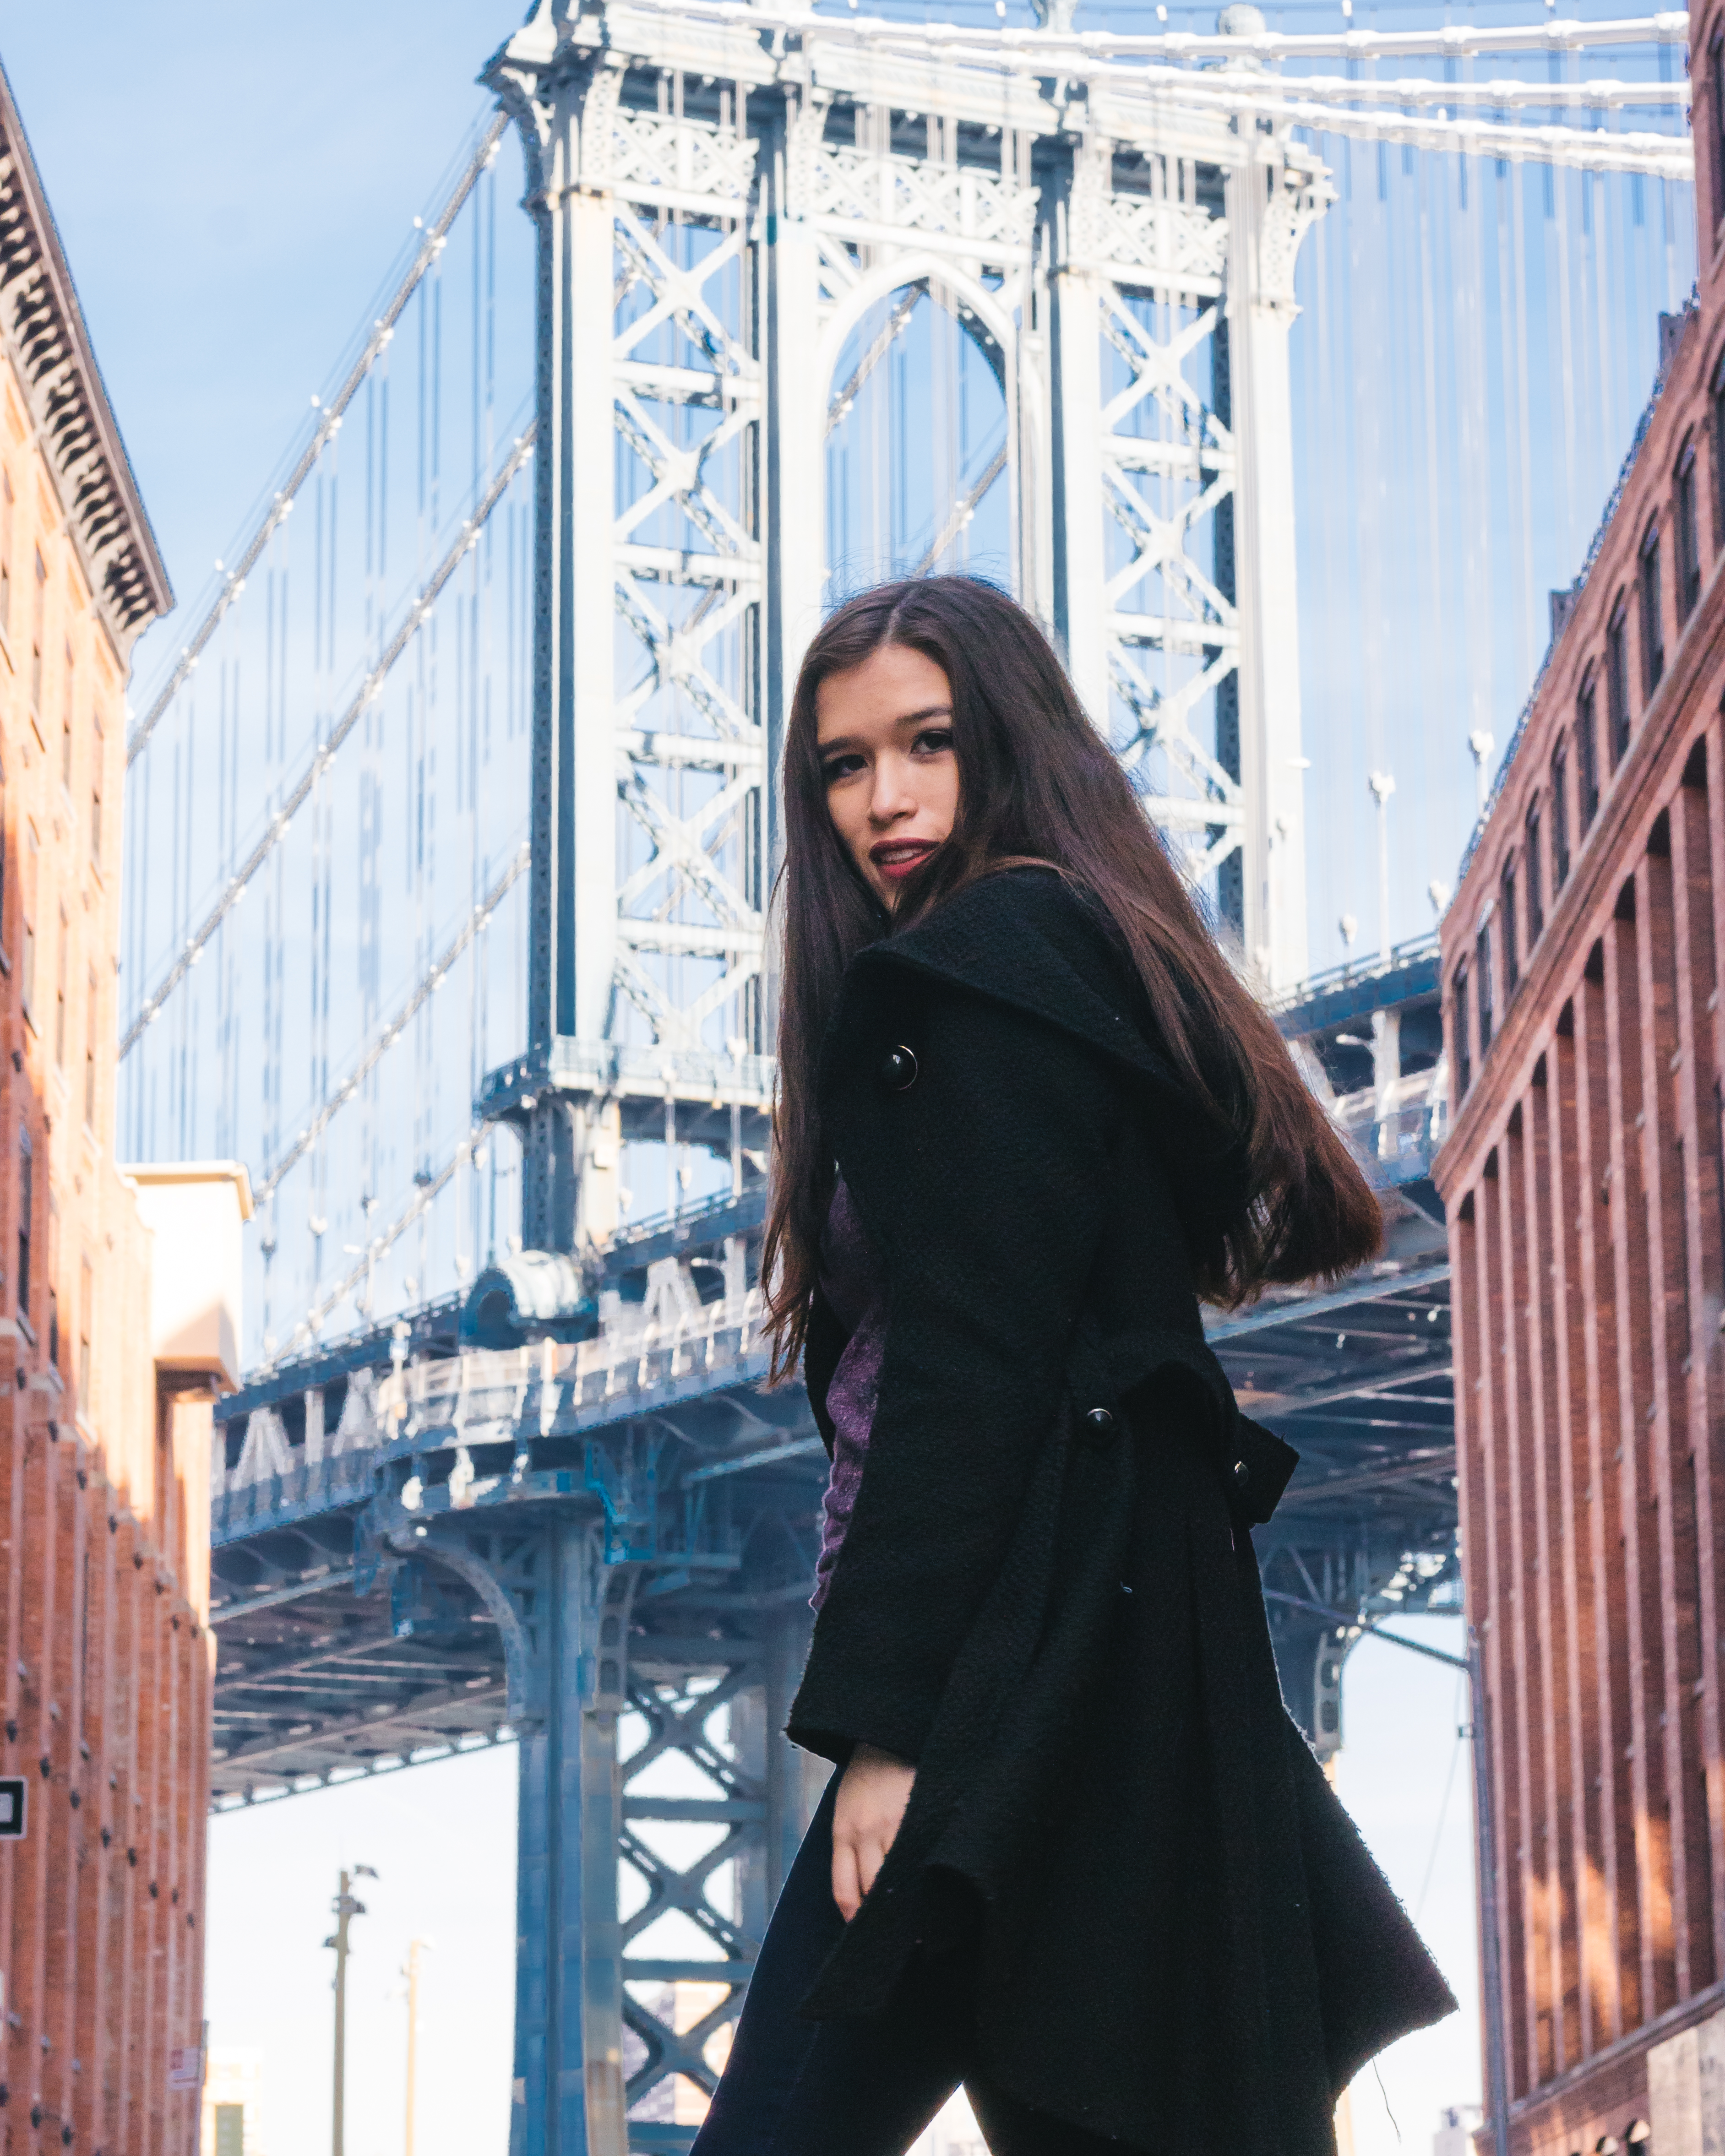 style blogger Eva Phan of Eva Darling in DUMBO Brooklyn wearing a black steve madden coat on the corner of washington st and main st